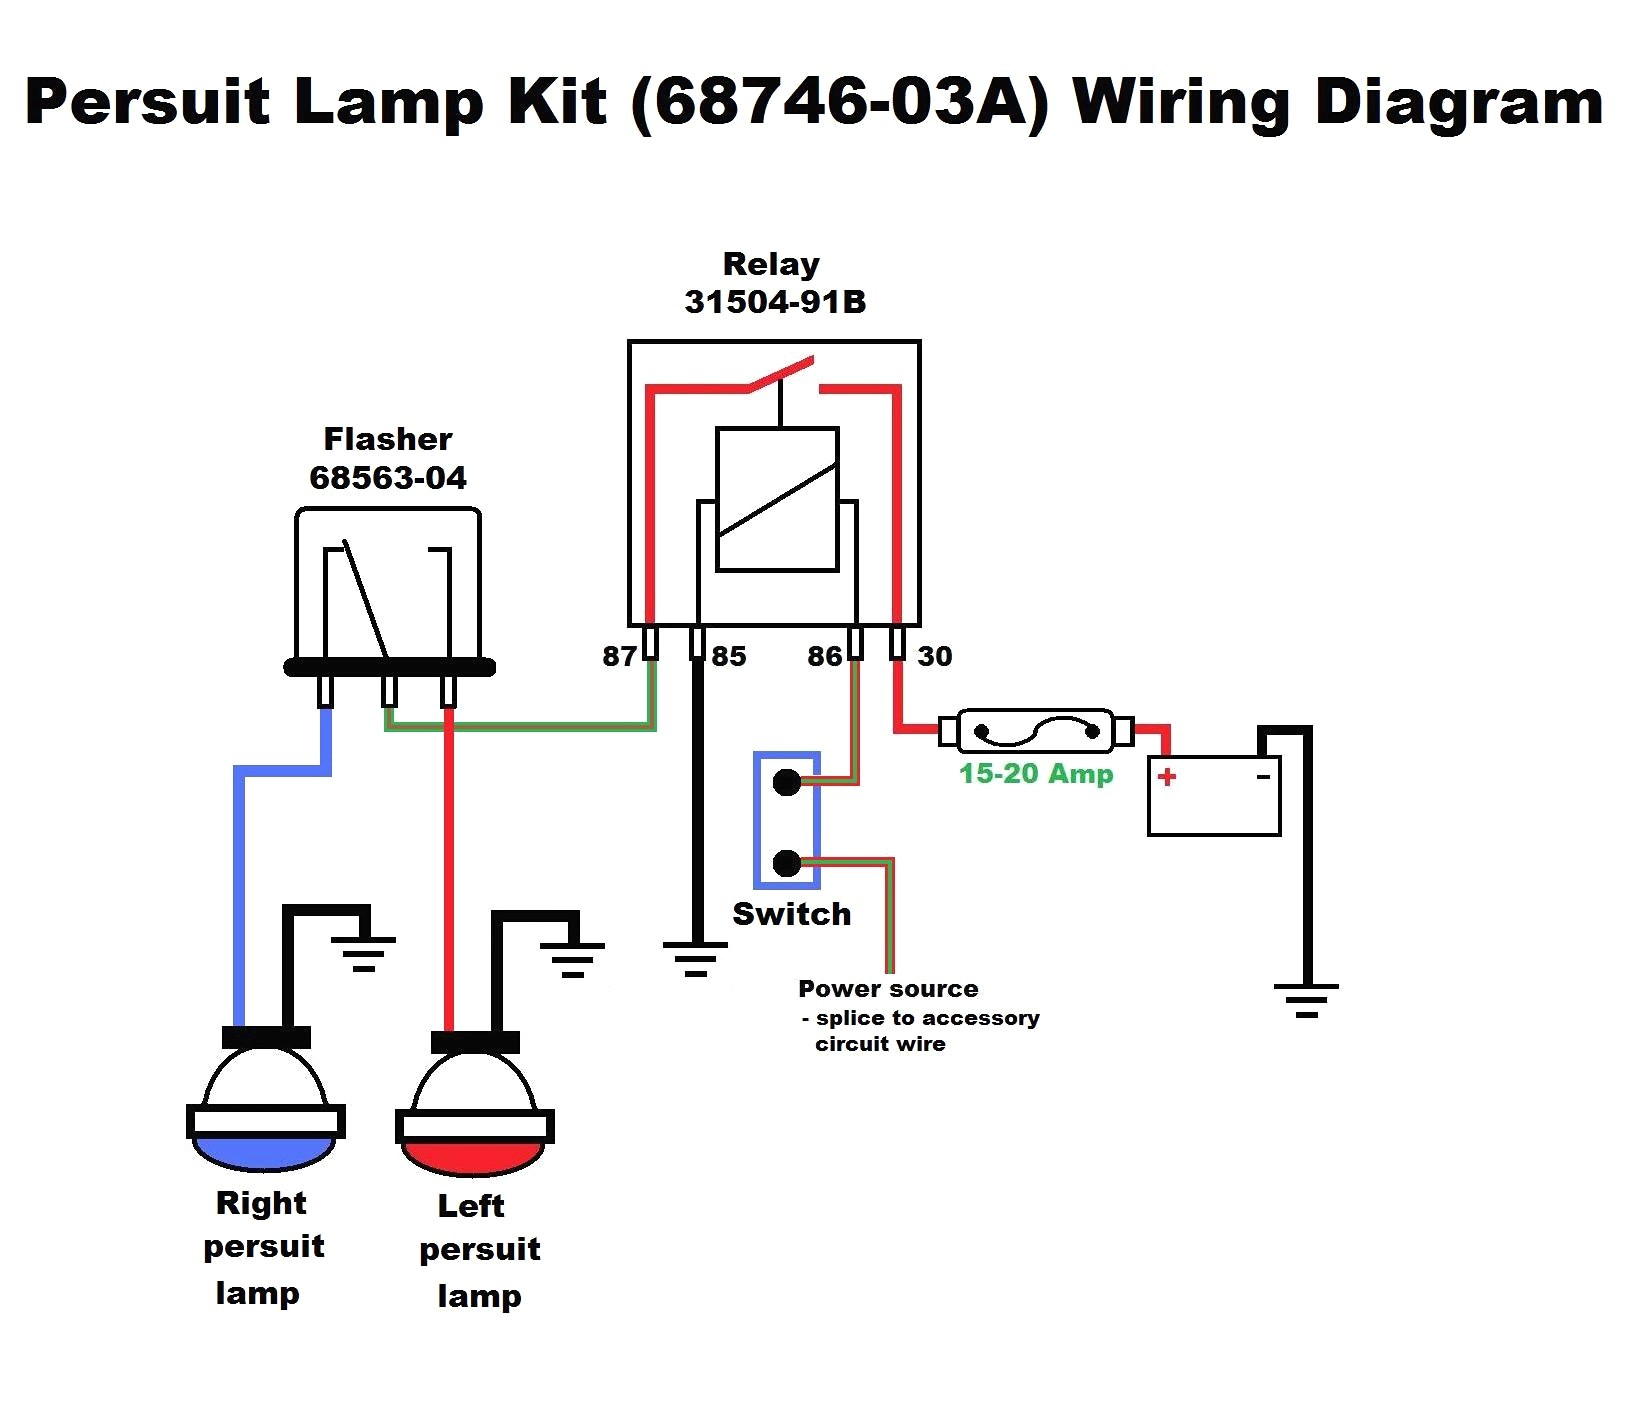 Prong Turn Signal Flasher Wiring on 3 prong signal flasher diagram, turn signal flasher relay wiring, stop and turn signal wiring, 3 prong ignition switch wiring,